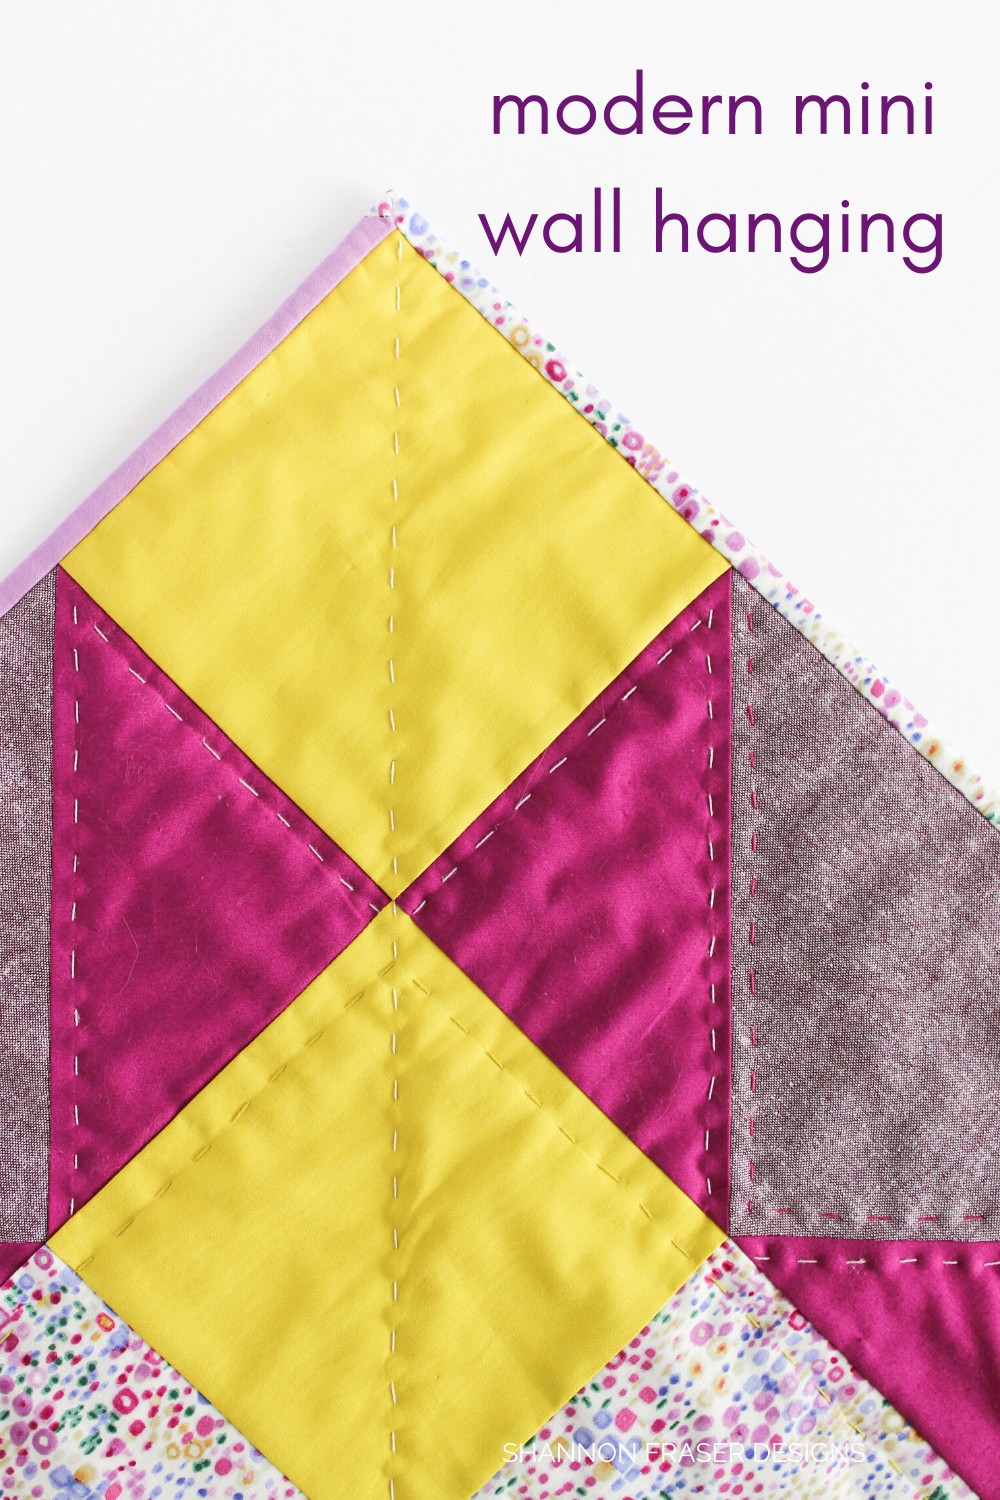 Hand quilting detail on the purple, wasabi and eggplant Indian Star quilted mini wall hanging | Quilt Big Book Tour | Shannon Fraser Designs #handquilting